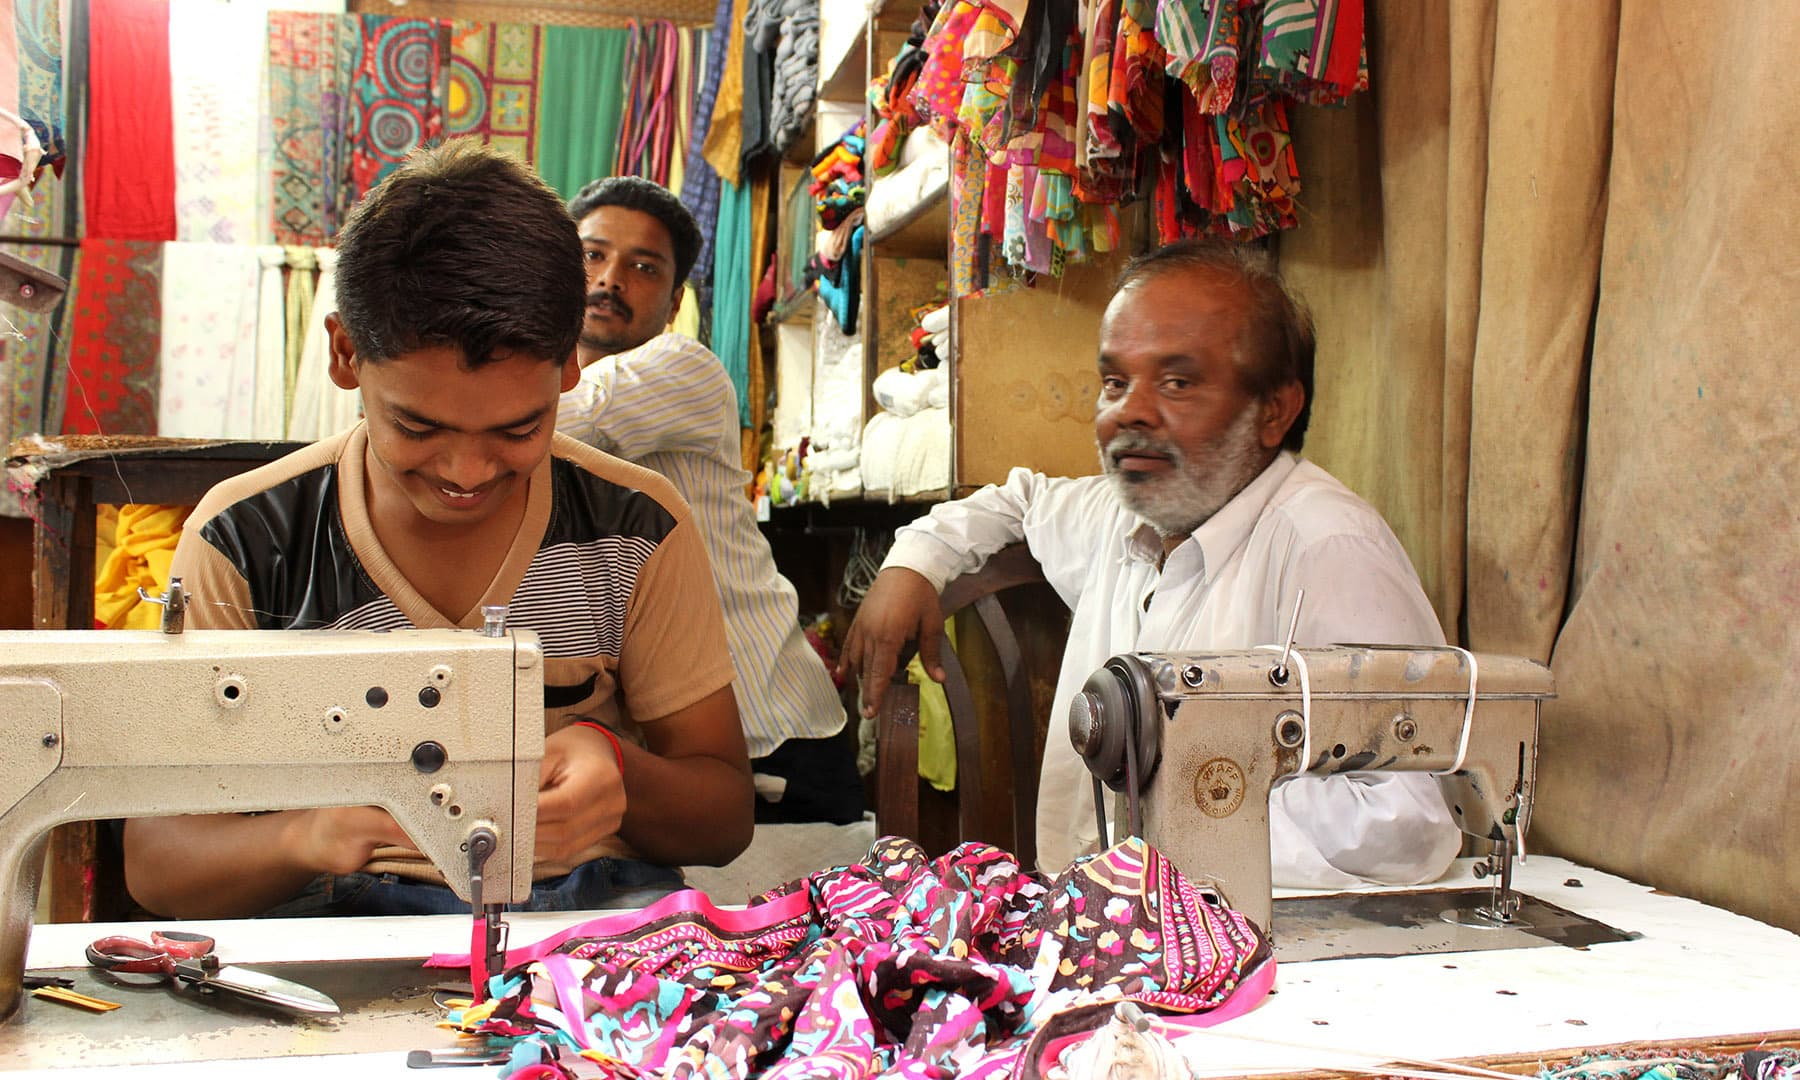 Meena Bazaar is famous for its crafty dupatta corners. This trio of son, father and grandfather have worked here since 17 years.